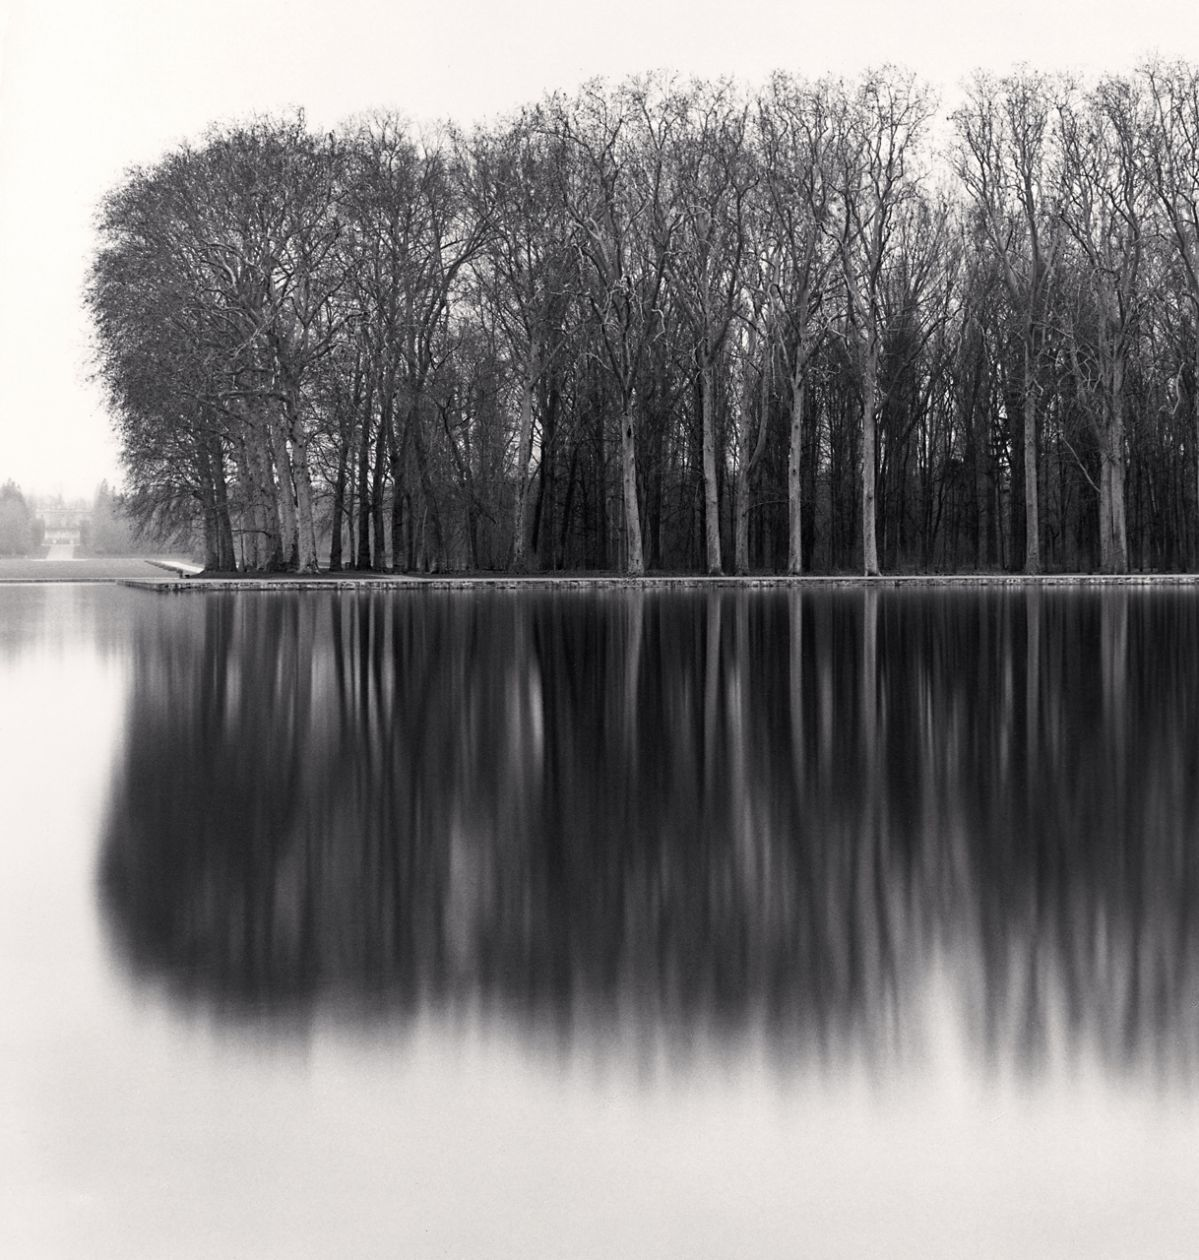 Octagonal Basin, Parc de Sceaux, Paris (1996) by Michael Kenna